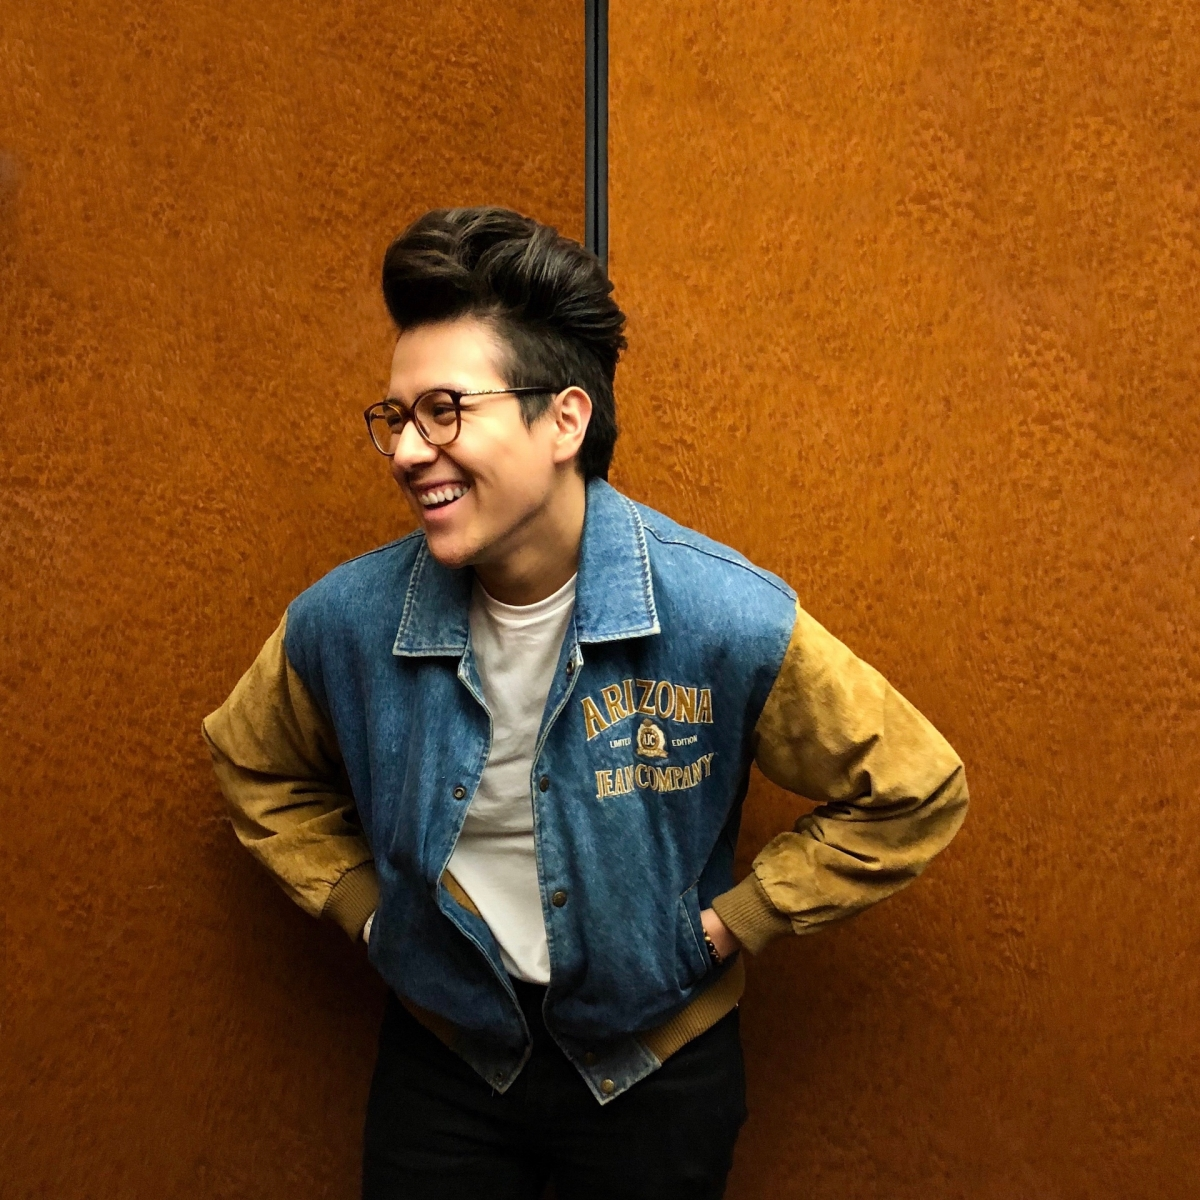 Antonio wears glasses and a denim jacket with suede sleeves, smiling away from the camera.